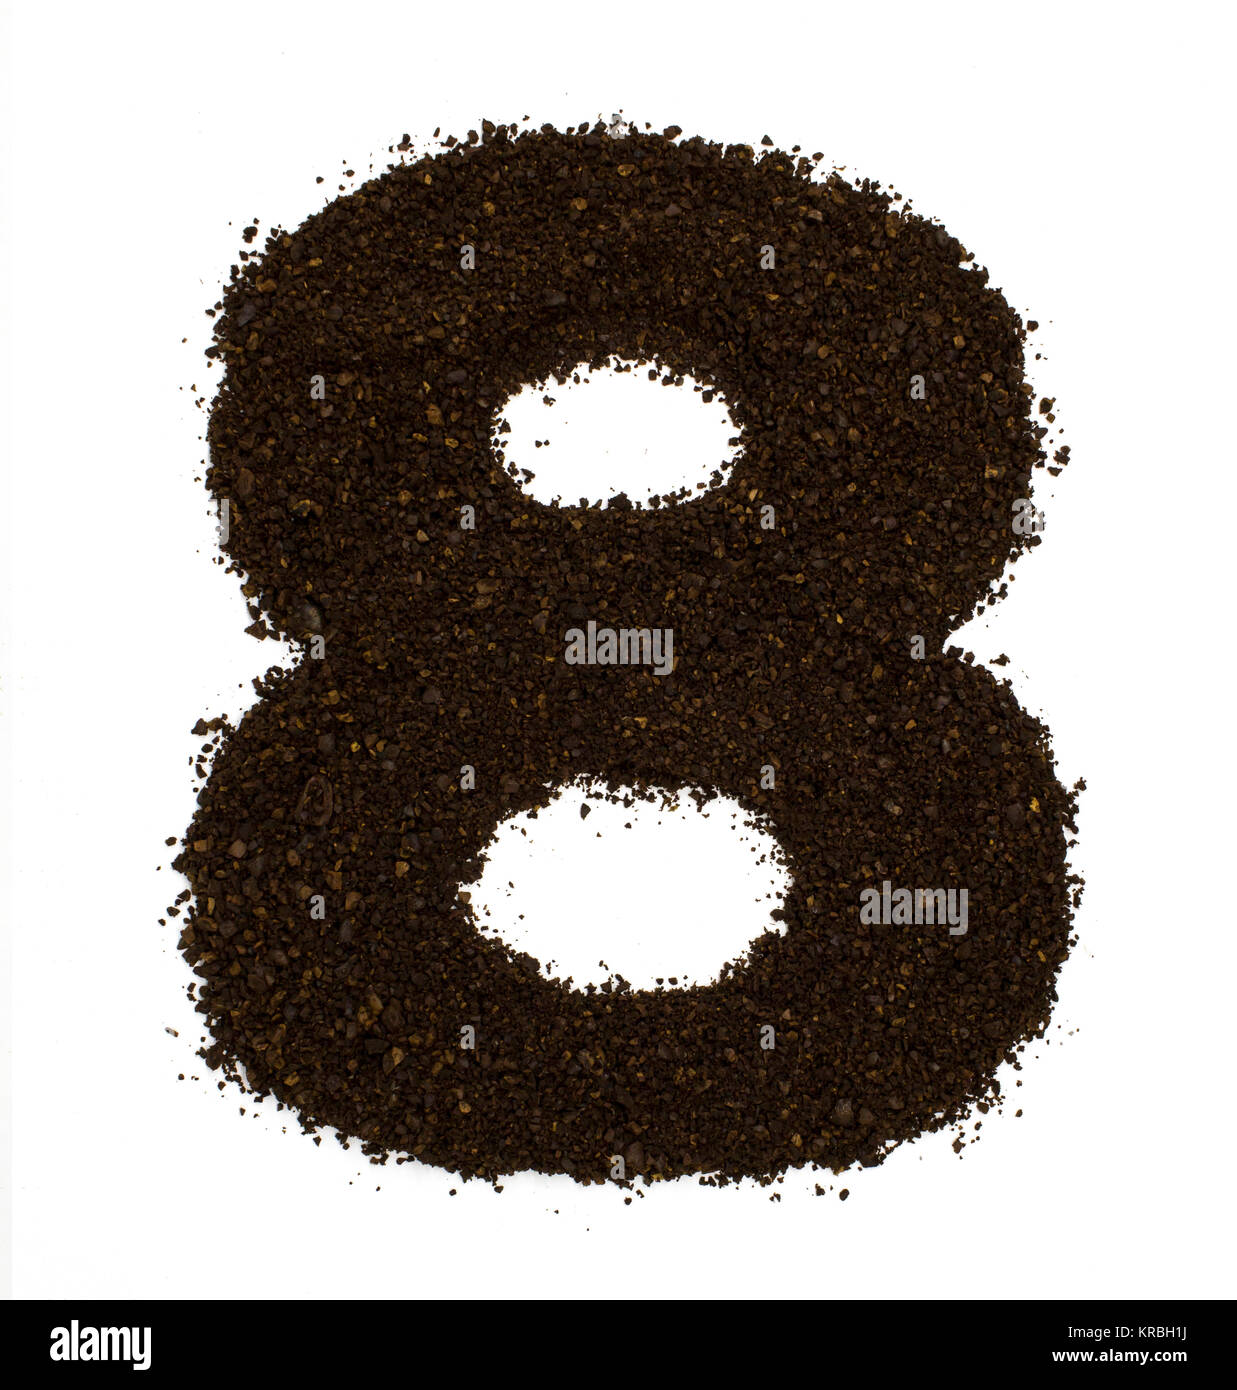 Number 8 eight made of ground coarse coffee isolated on white. Flat lay, top view - Stock Image